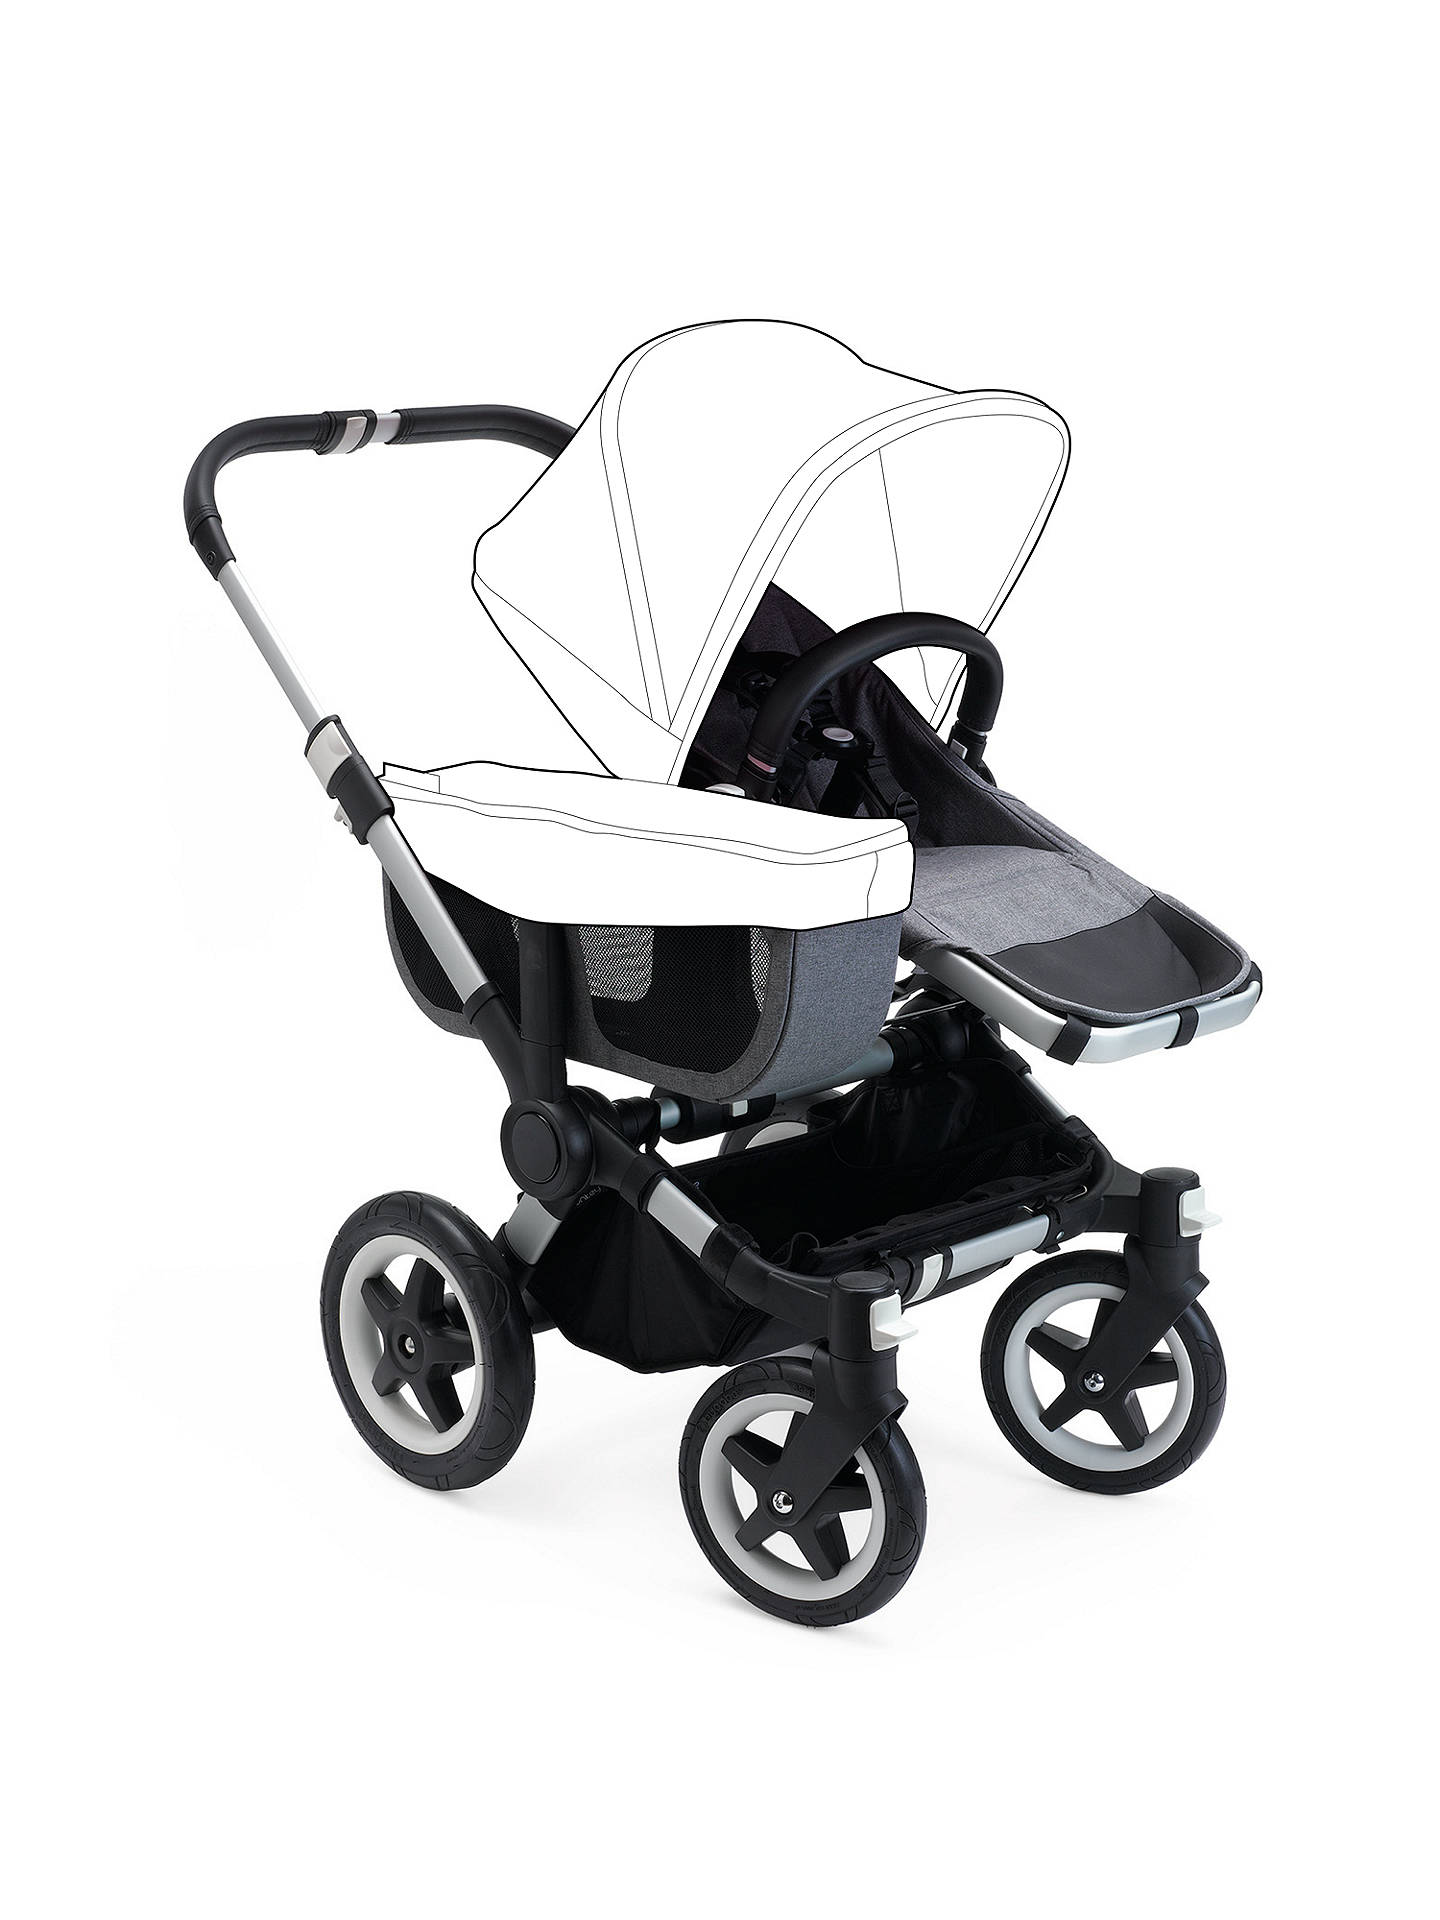 BuyBugaboo Donkey2 Mono Complete Pushchair & Carrycot, Aluminium with Grey Melange Fabric Online at johnlewis.com